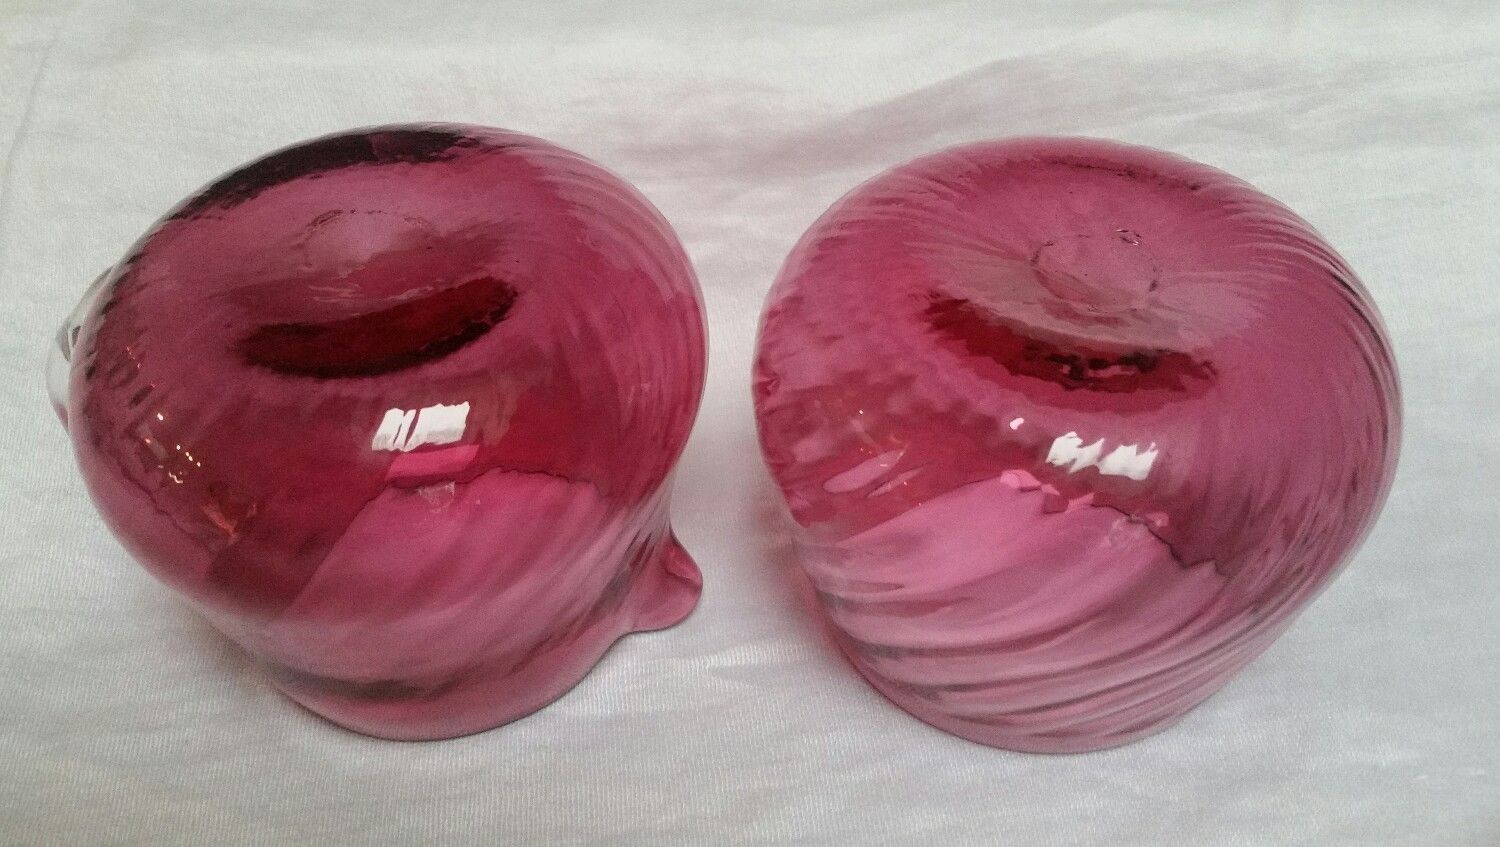 pilgrim cranberry glass vase of vintage pilgrim glass cranberry optic swirl hand blown creamer and throughout 5 of 5 see more